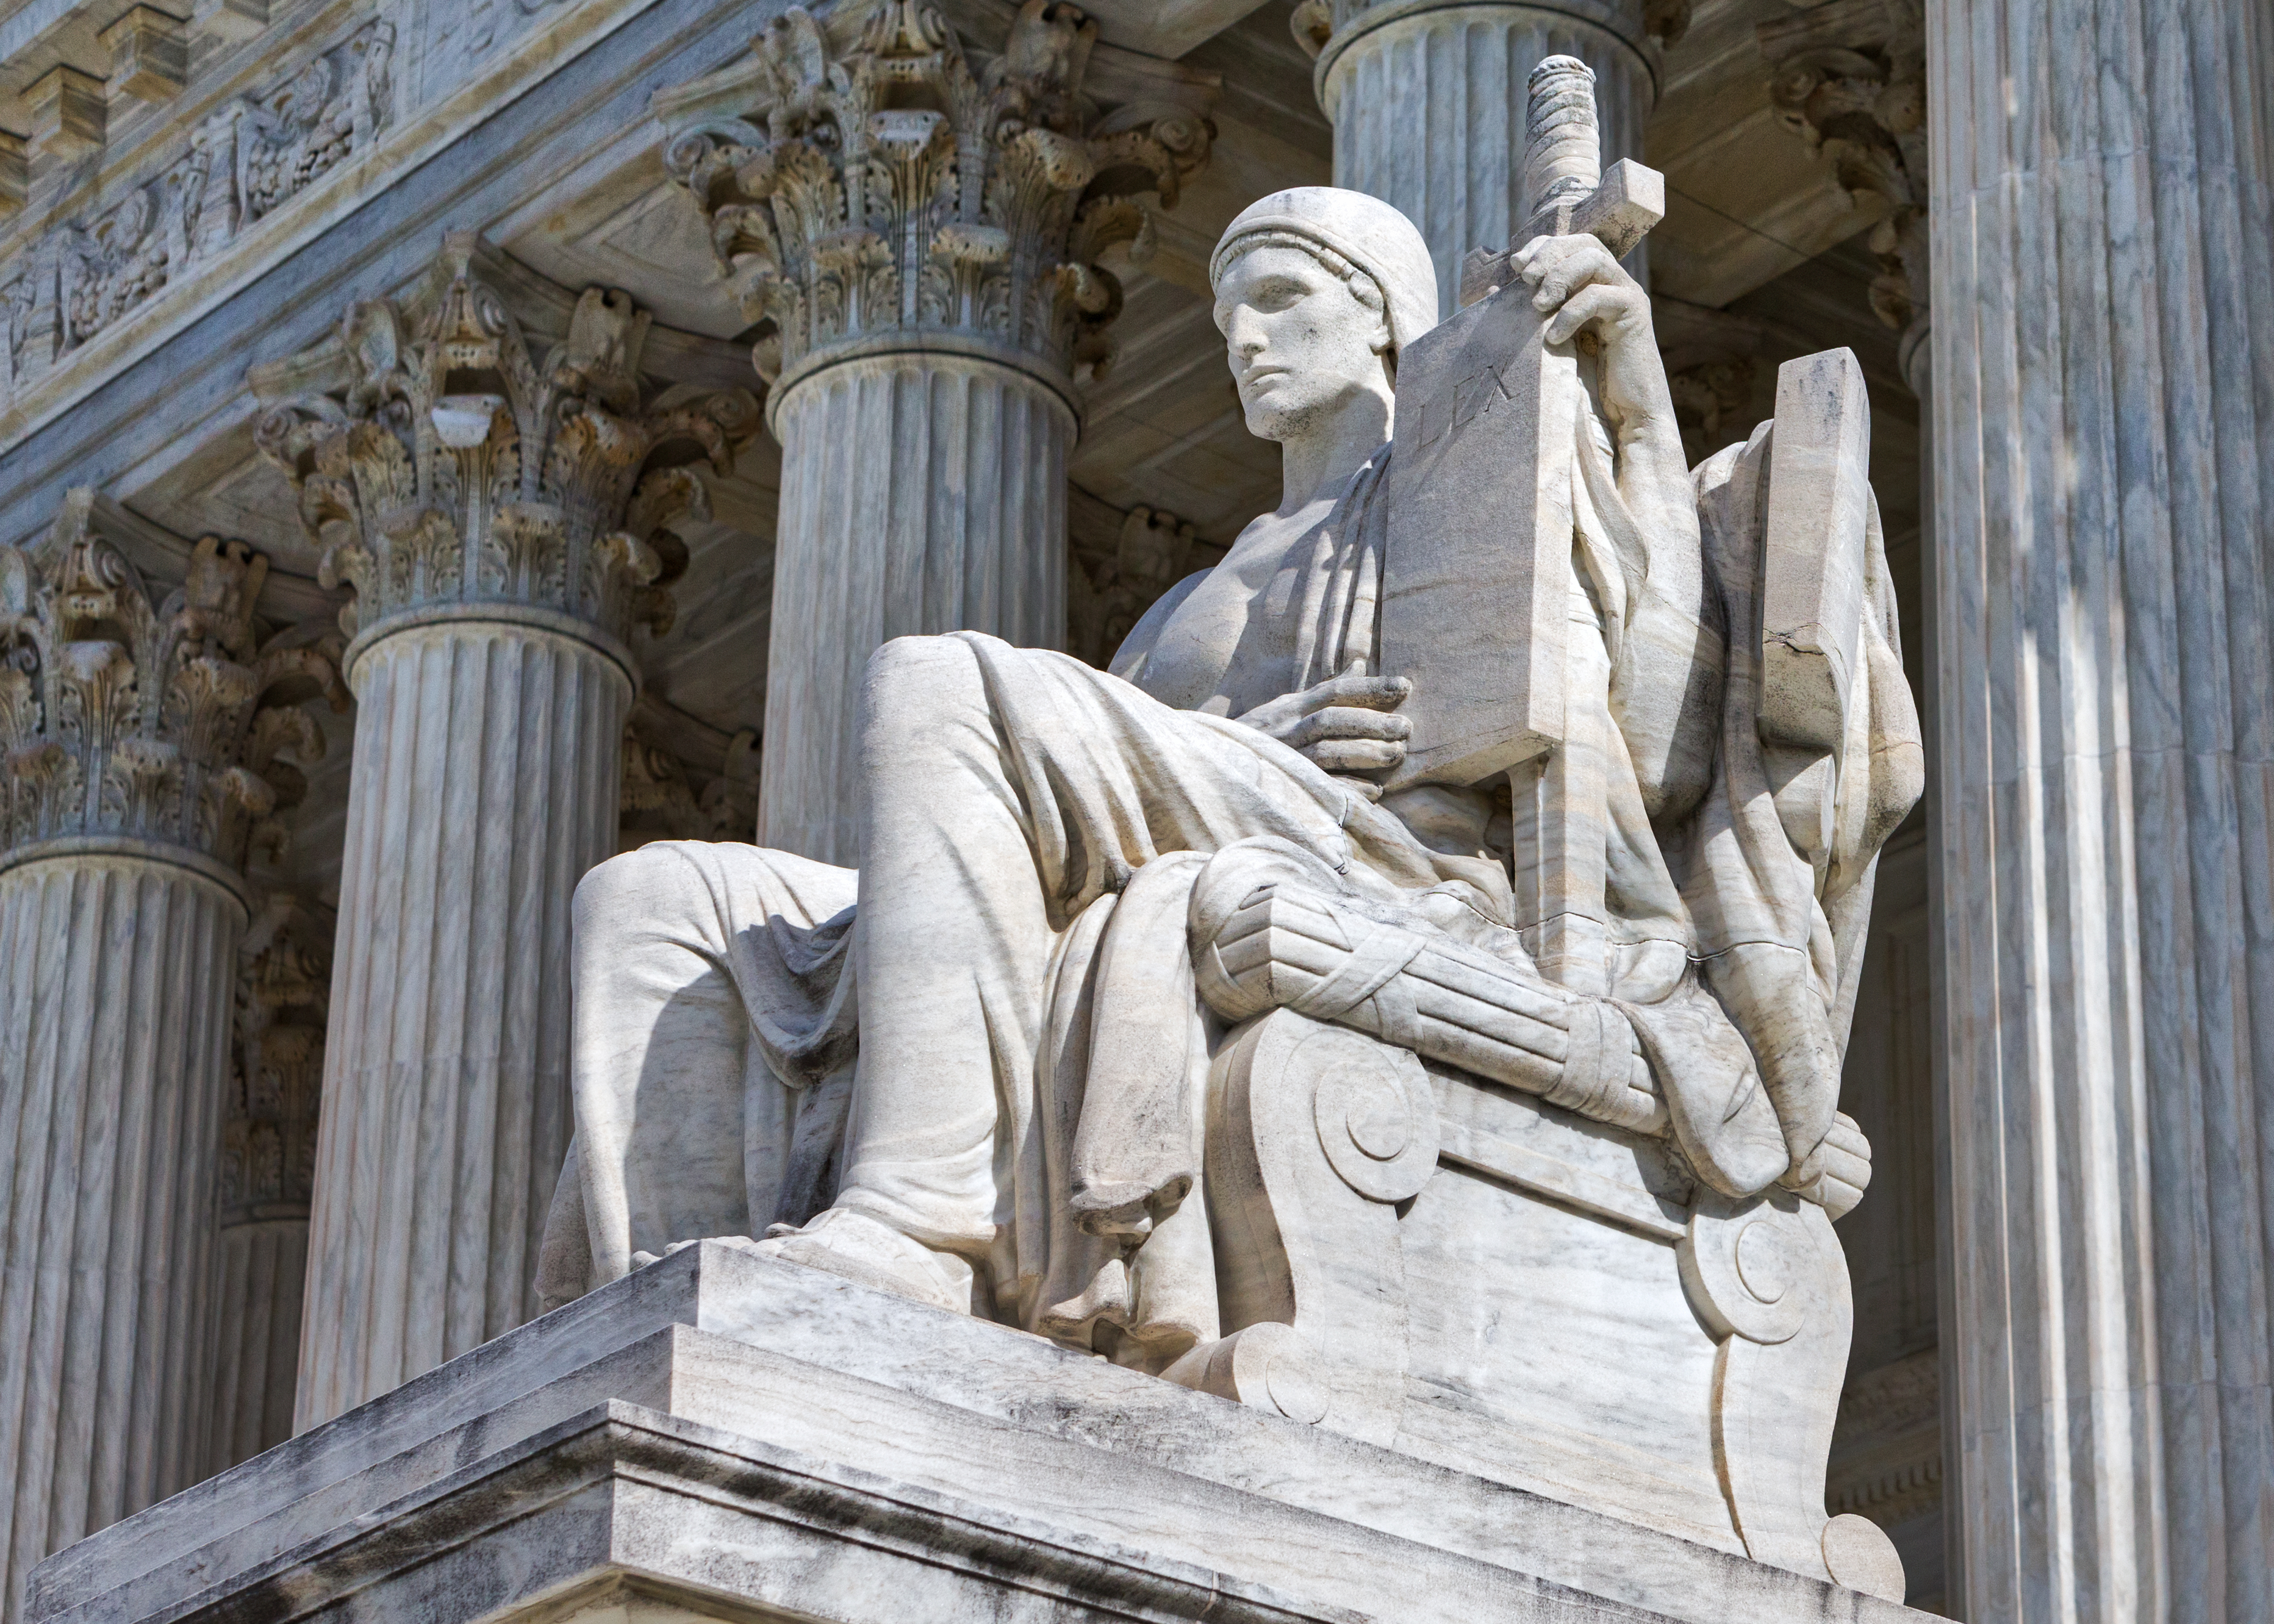 The Authority of Law, also called the Guardian or Executor of Law, is powerful, erect, and vigilant. He waits with concentrated attention, holding in his left hand the tablet of laws, backed by the sheathed sword, symbolic of enforcement through law.